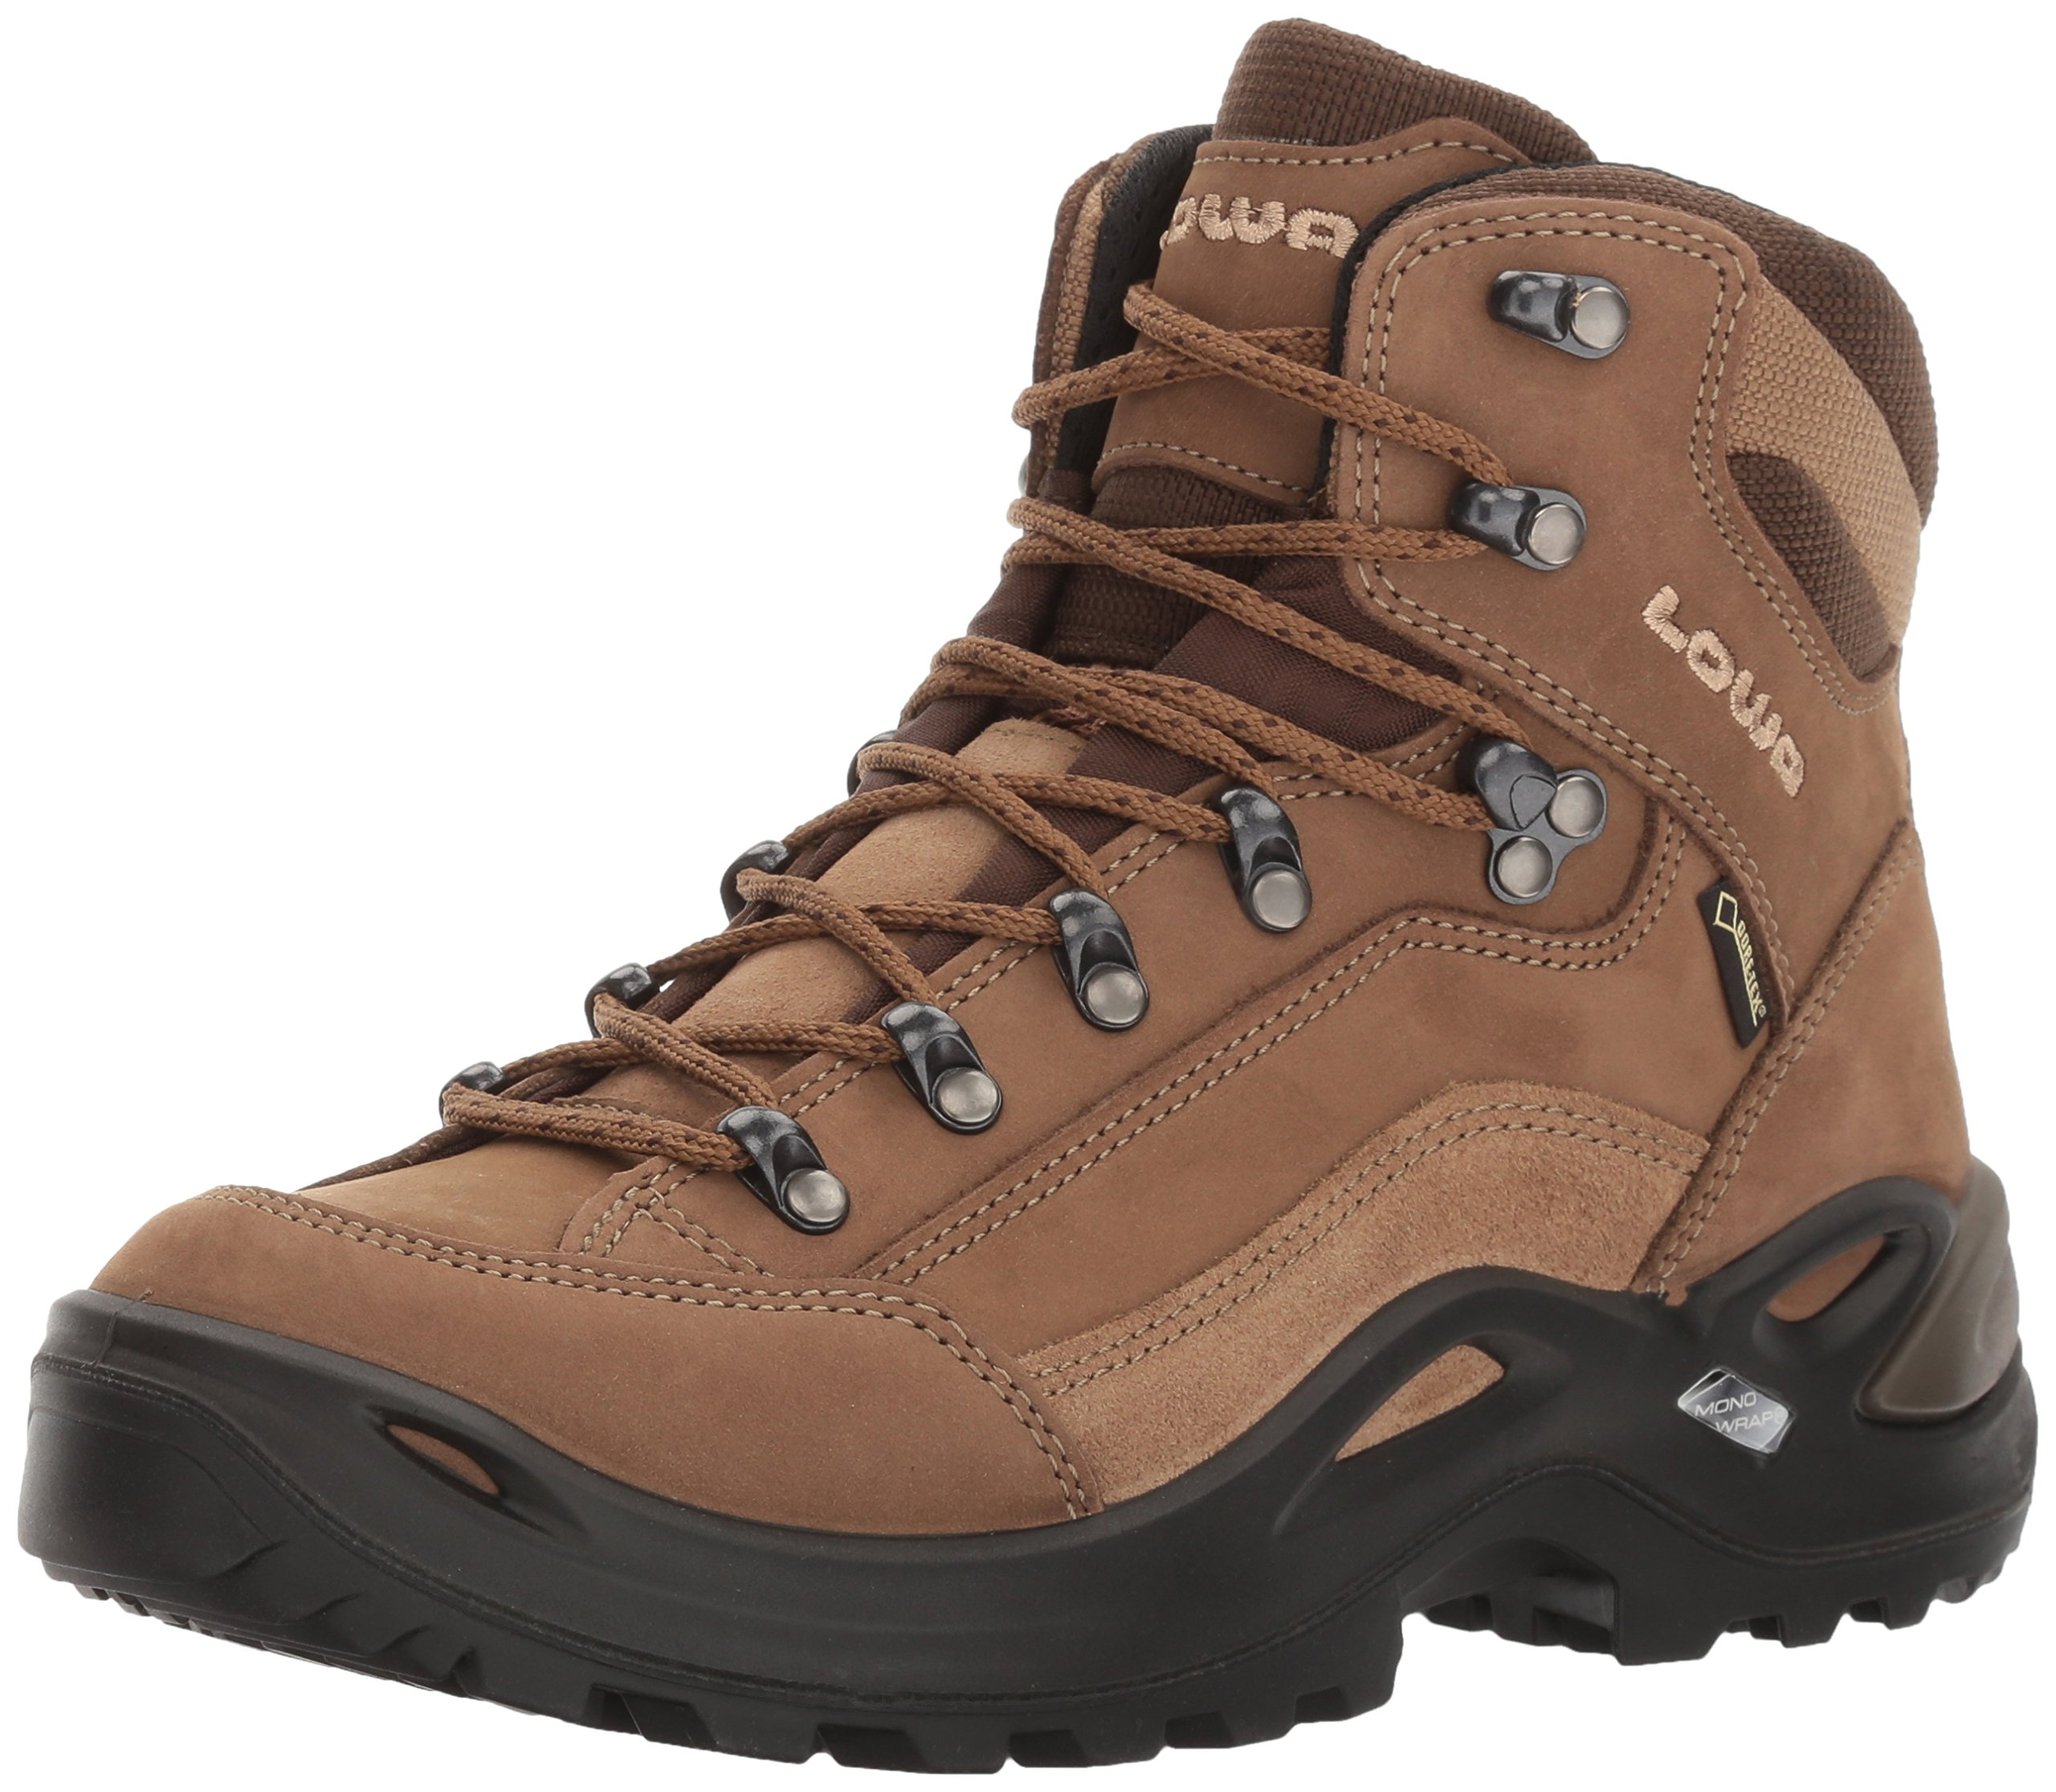 Lowa Women's Renegade GTX Mid Hiking Boot,Taupe/Sepia,7 M US